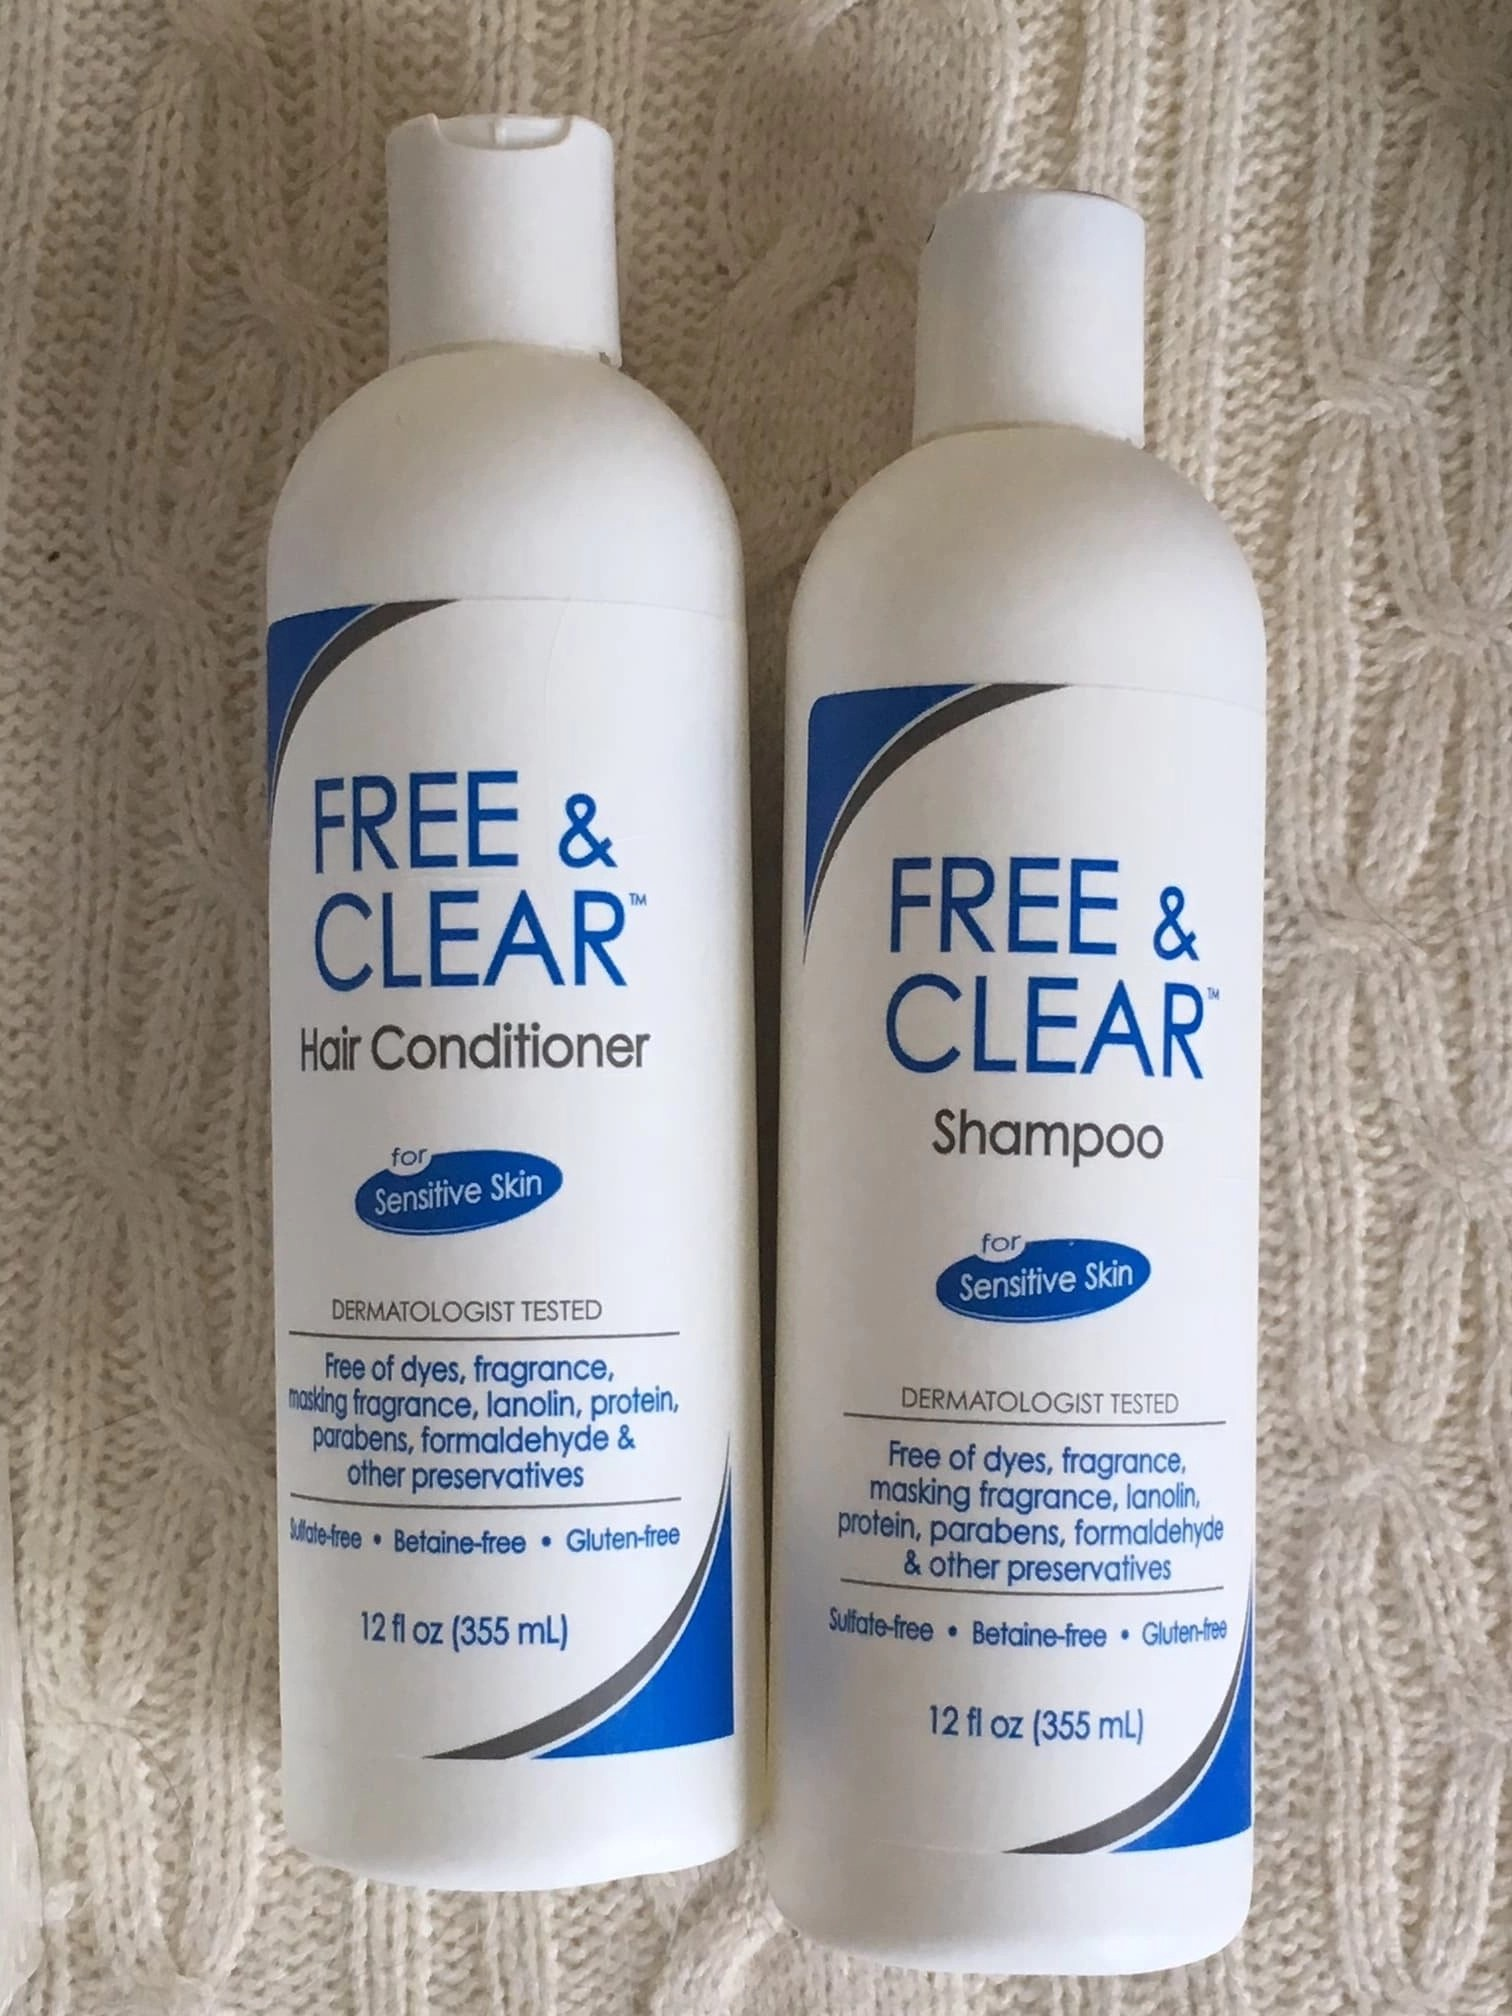 Free & Clear Shampoo & Conditioner Bottles